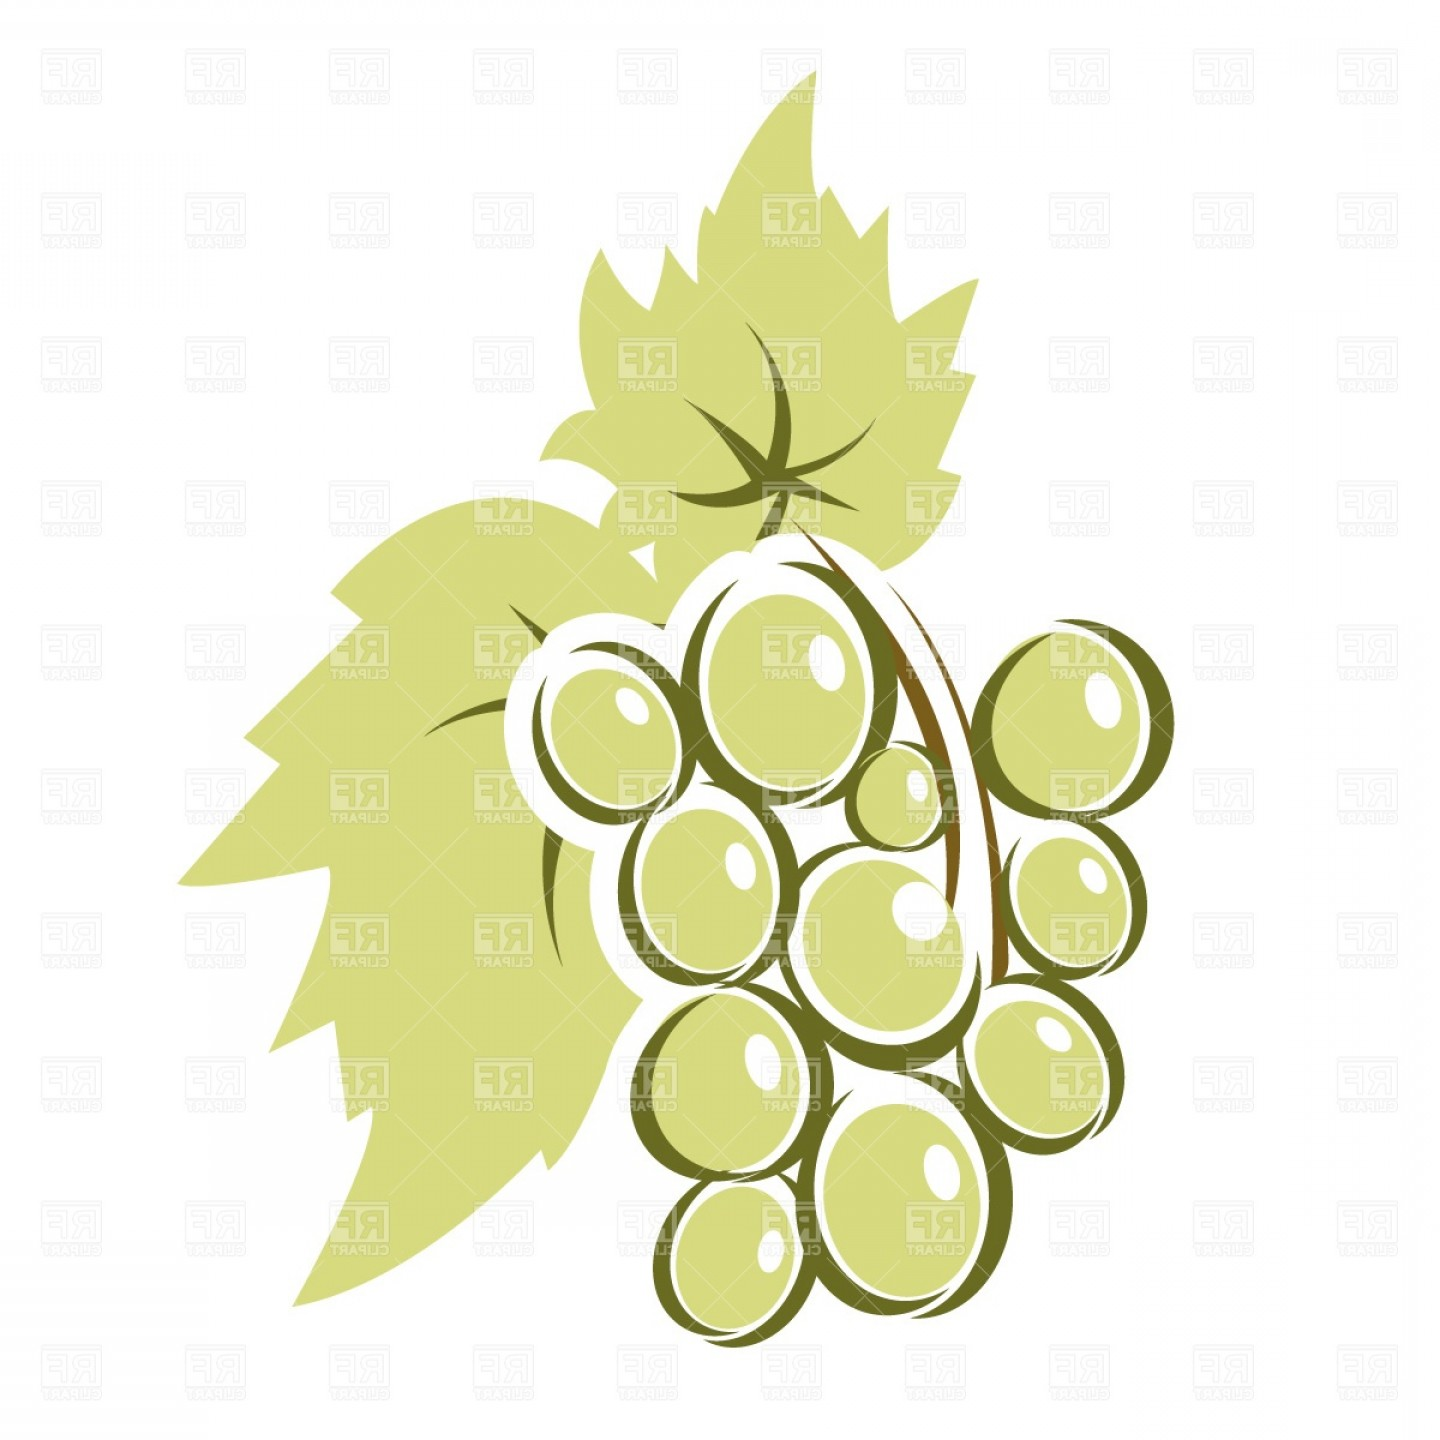 Grapes Clip Art Vector: Bunch Of Grapes With Leaves Vector Clipart